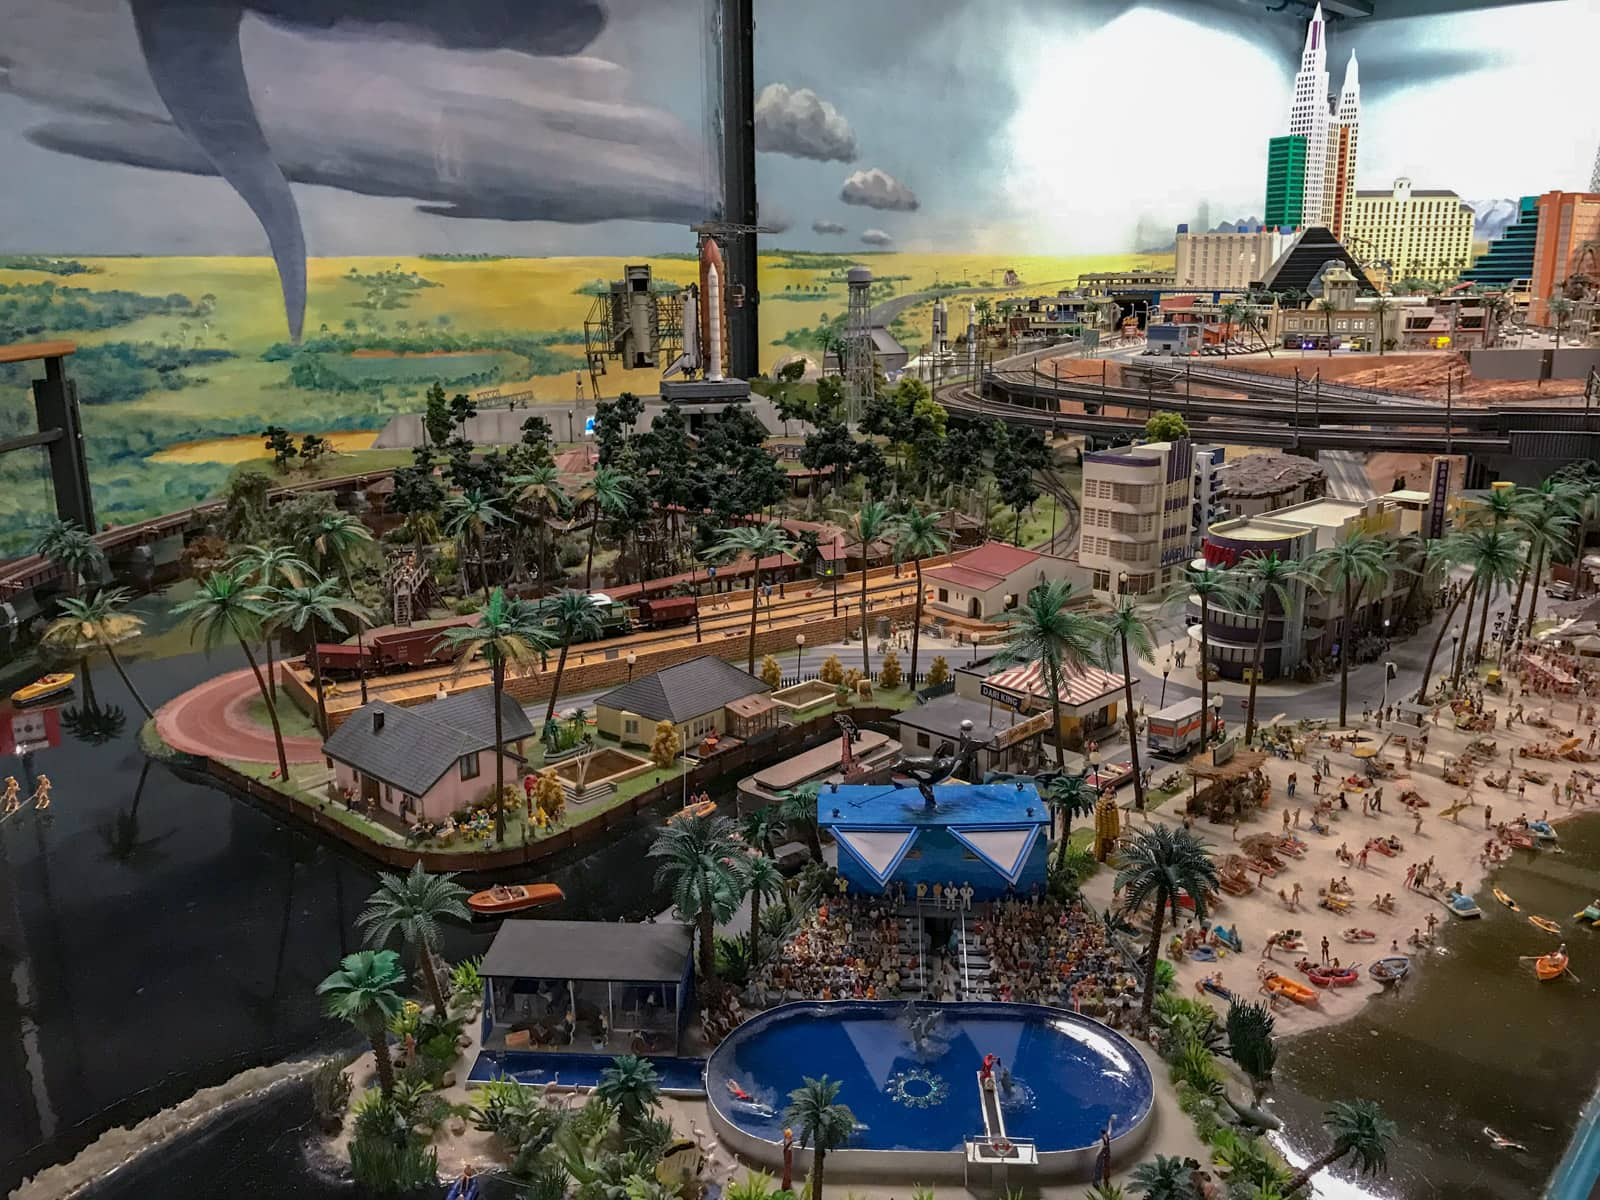 A miniature replica of a beach resort, as part of a model railway, with dozens of people and real water. There is exceptional detail.